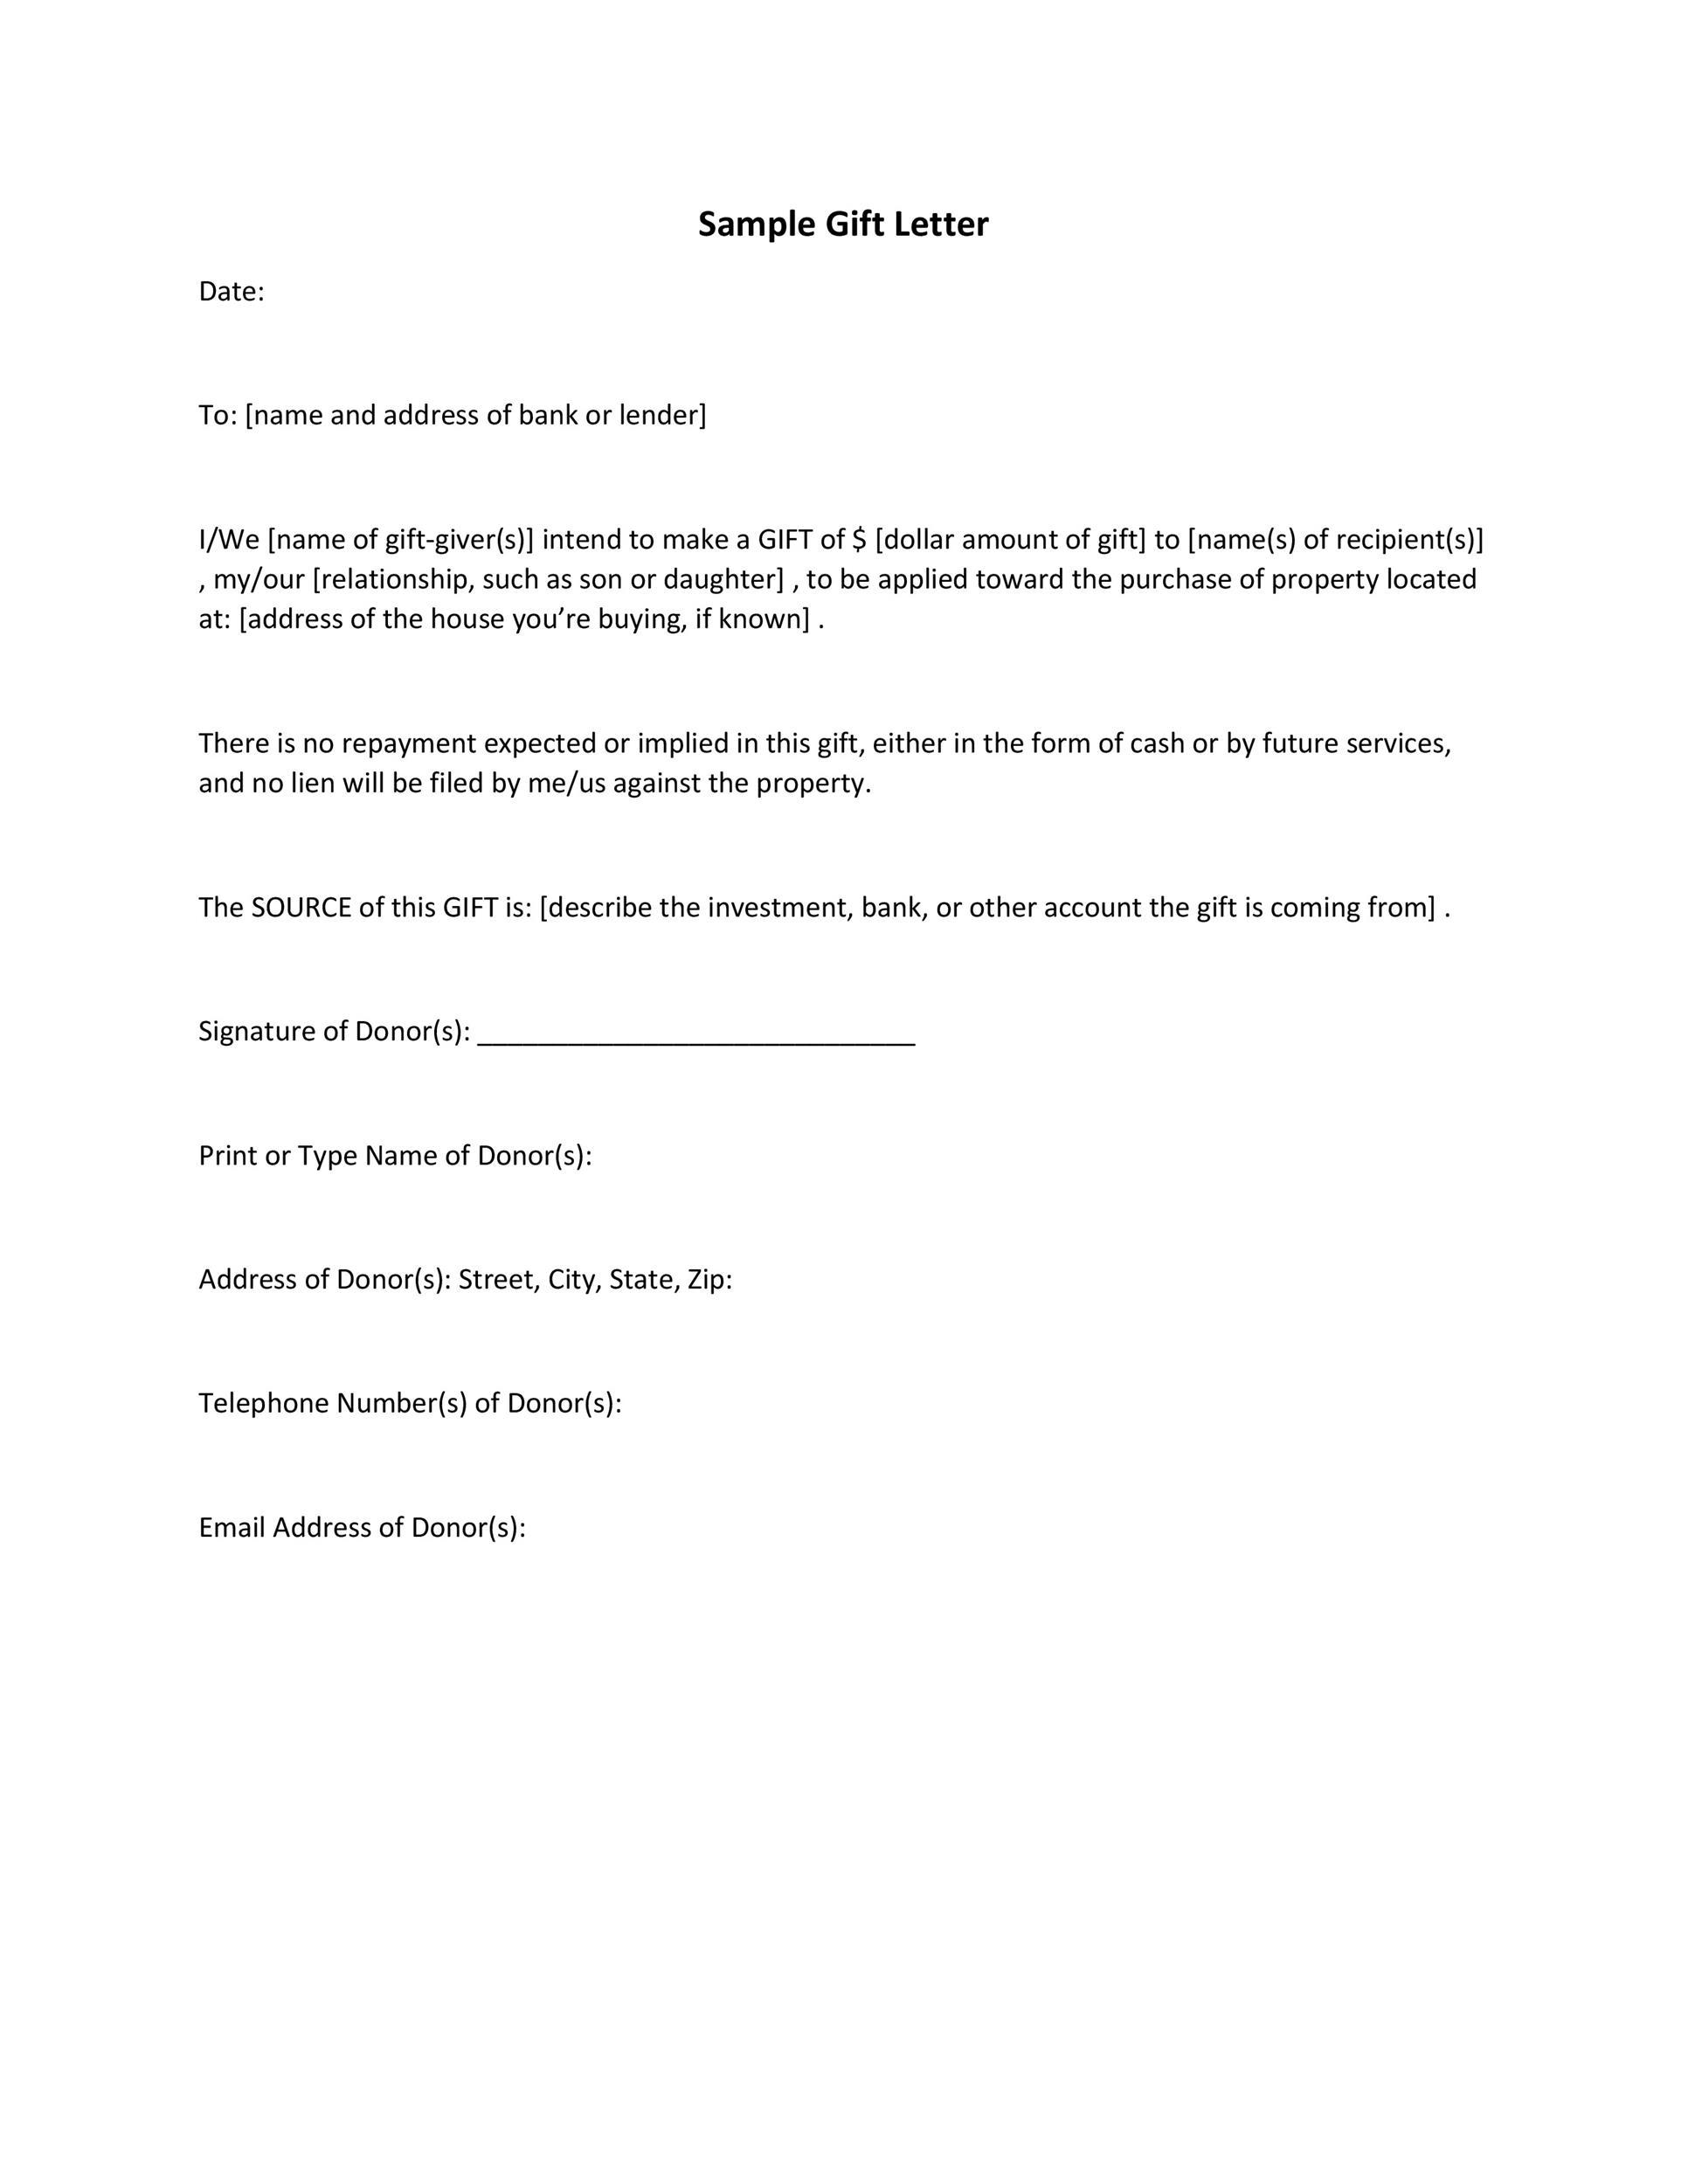 Sample Gift Letter For Mortgage from templatelab.com